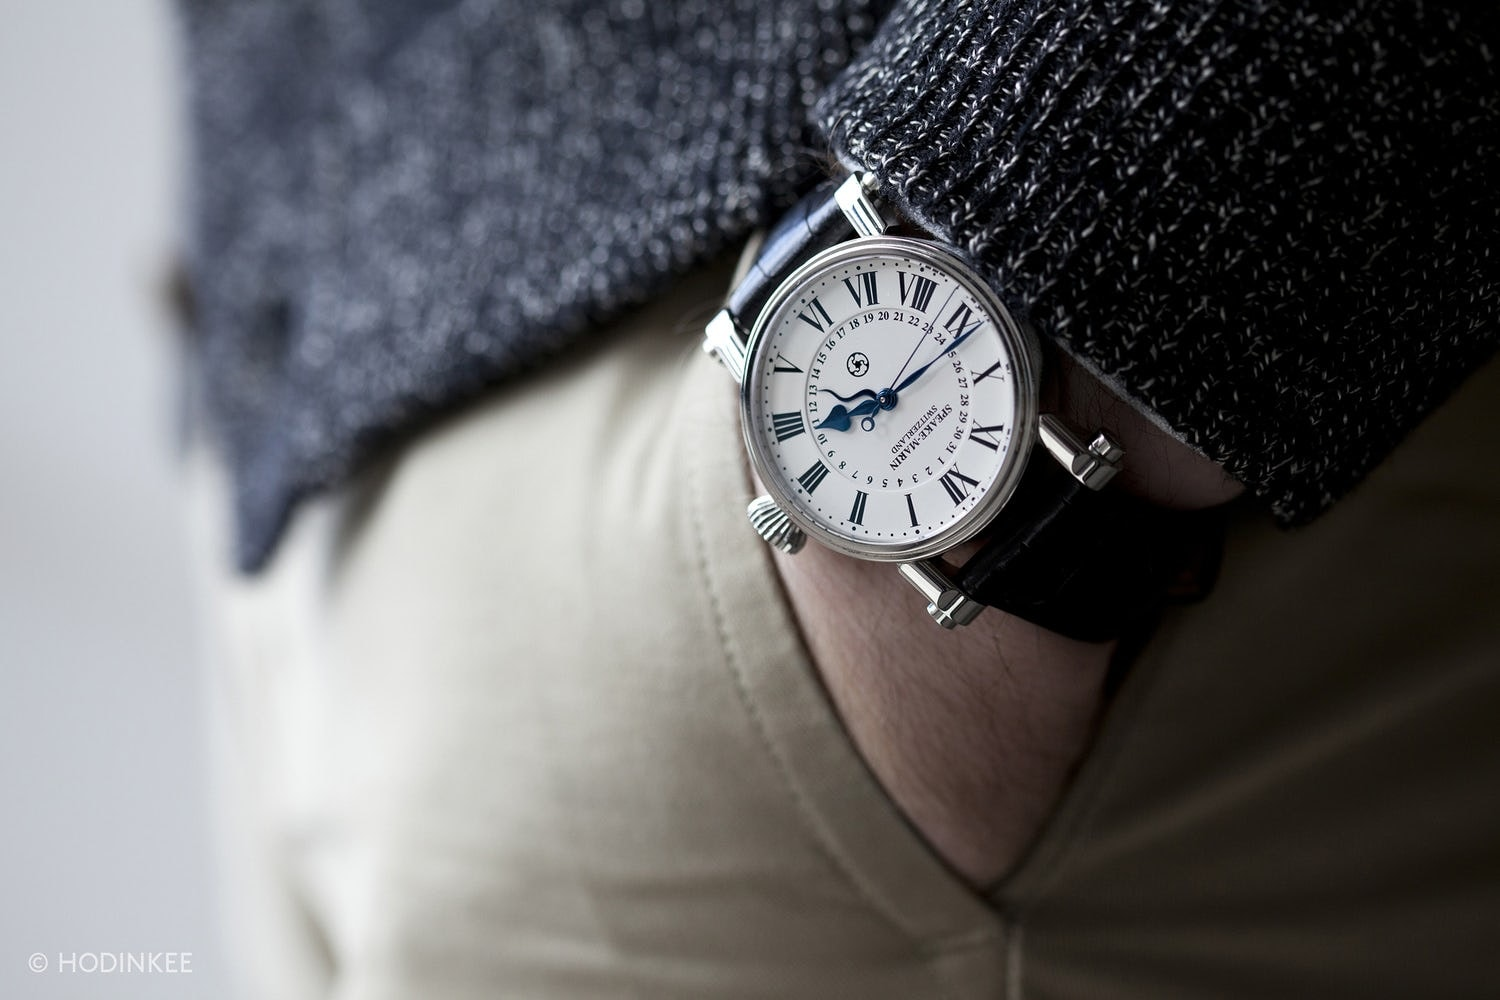 img.jpeg?ixlib=rails 1.1 Recommended Reading: Peter Speake-Marin Talks About Leaving His Namesake Brand And What Comes Next Recommended Reading: Peter Speake-Marin Talks About Leaving His Namesake Brand And What Comes Next  img